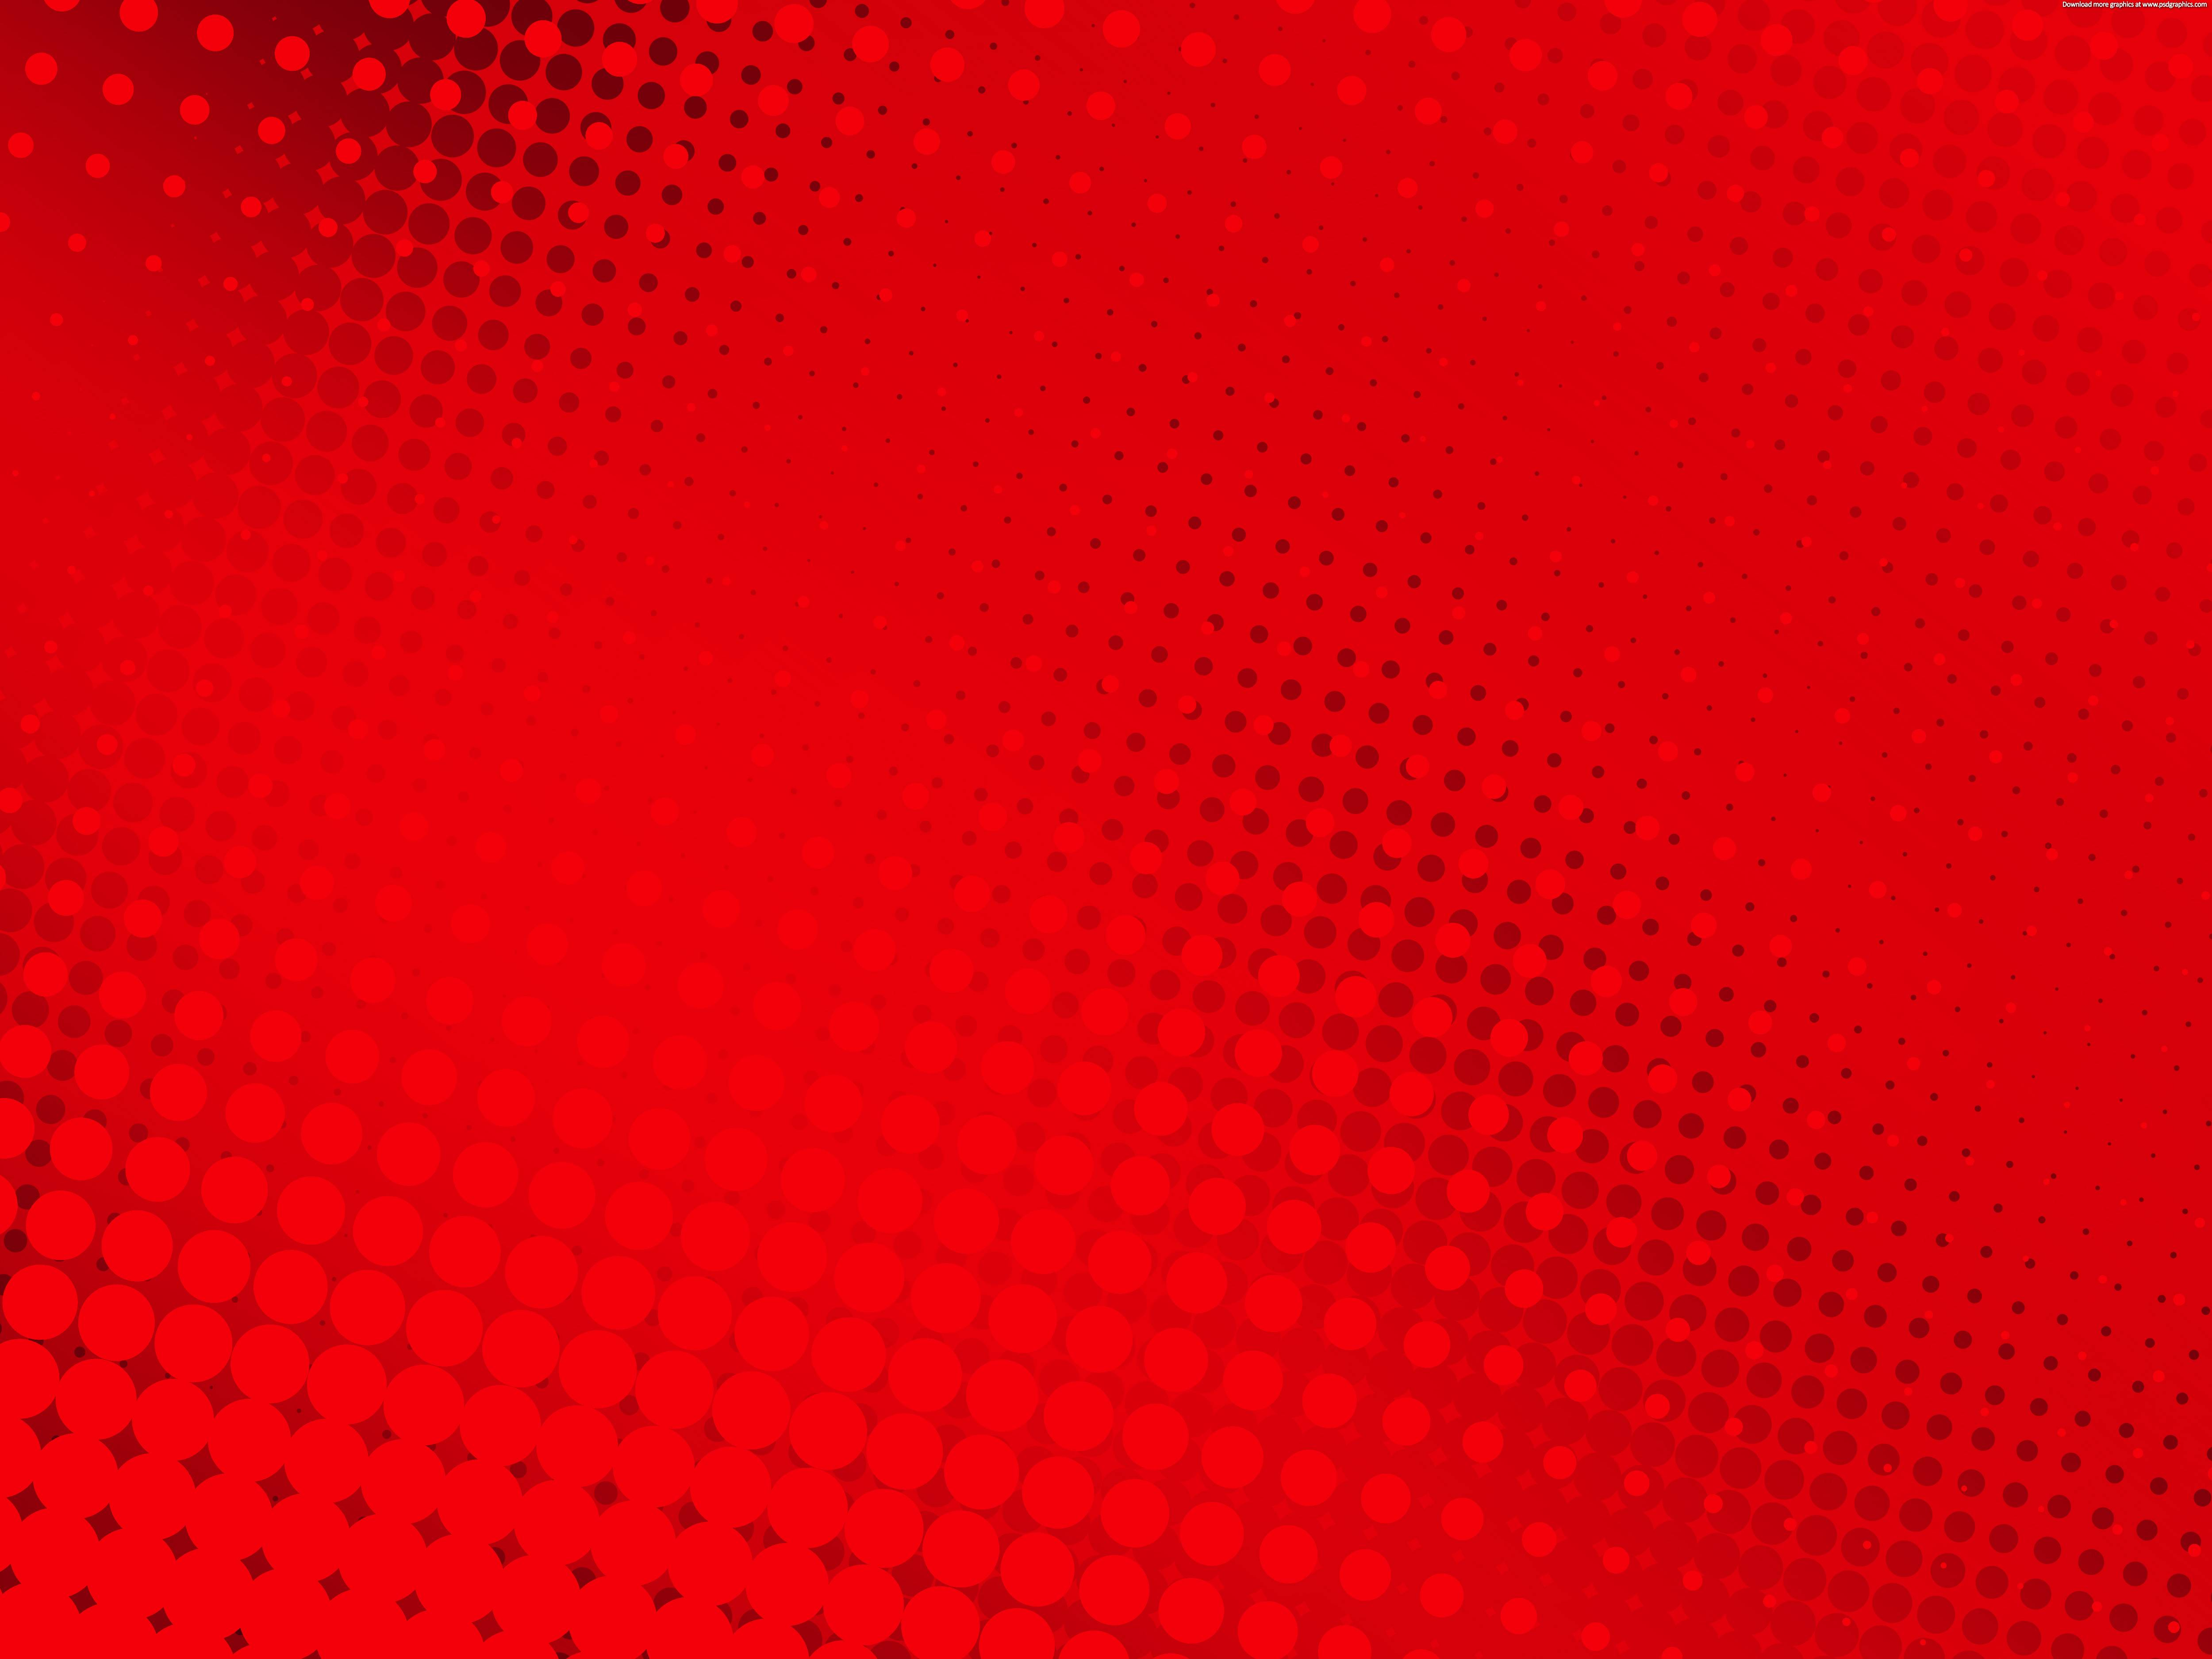 Red Backgrounds Image Wallpaper Cave